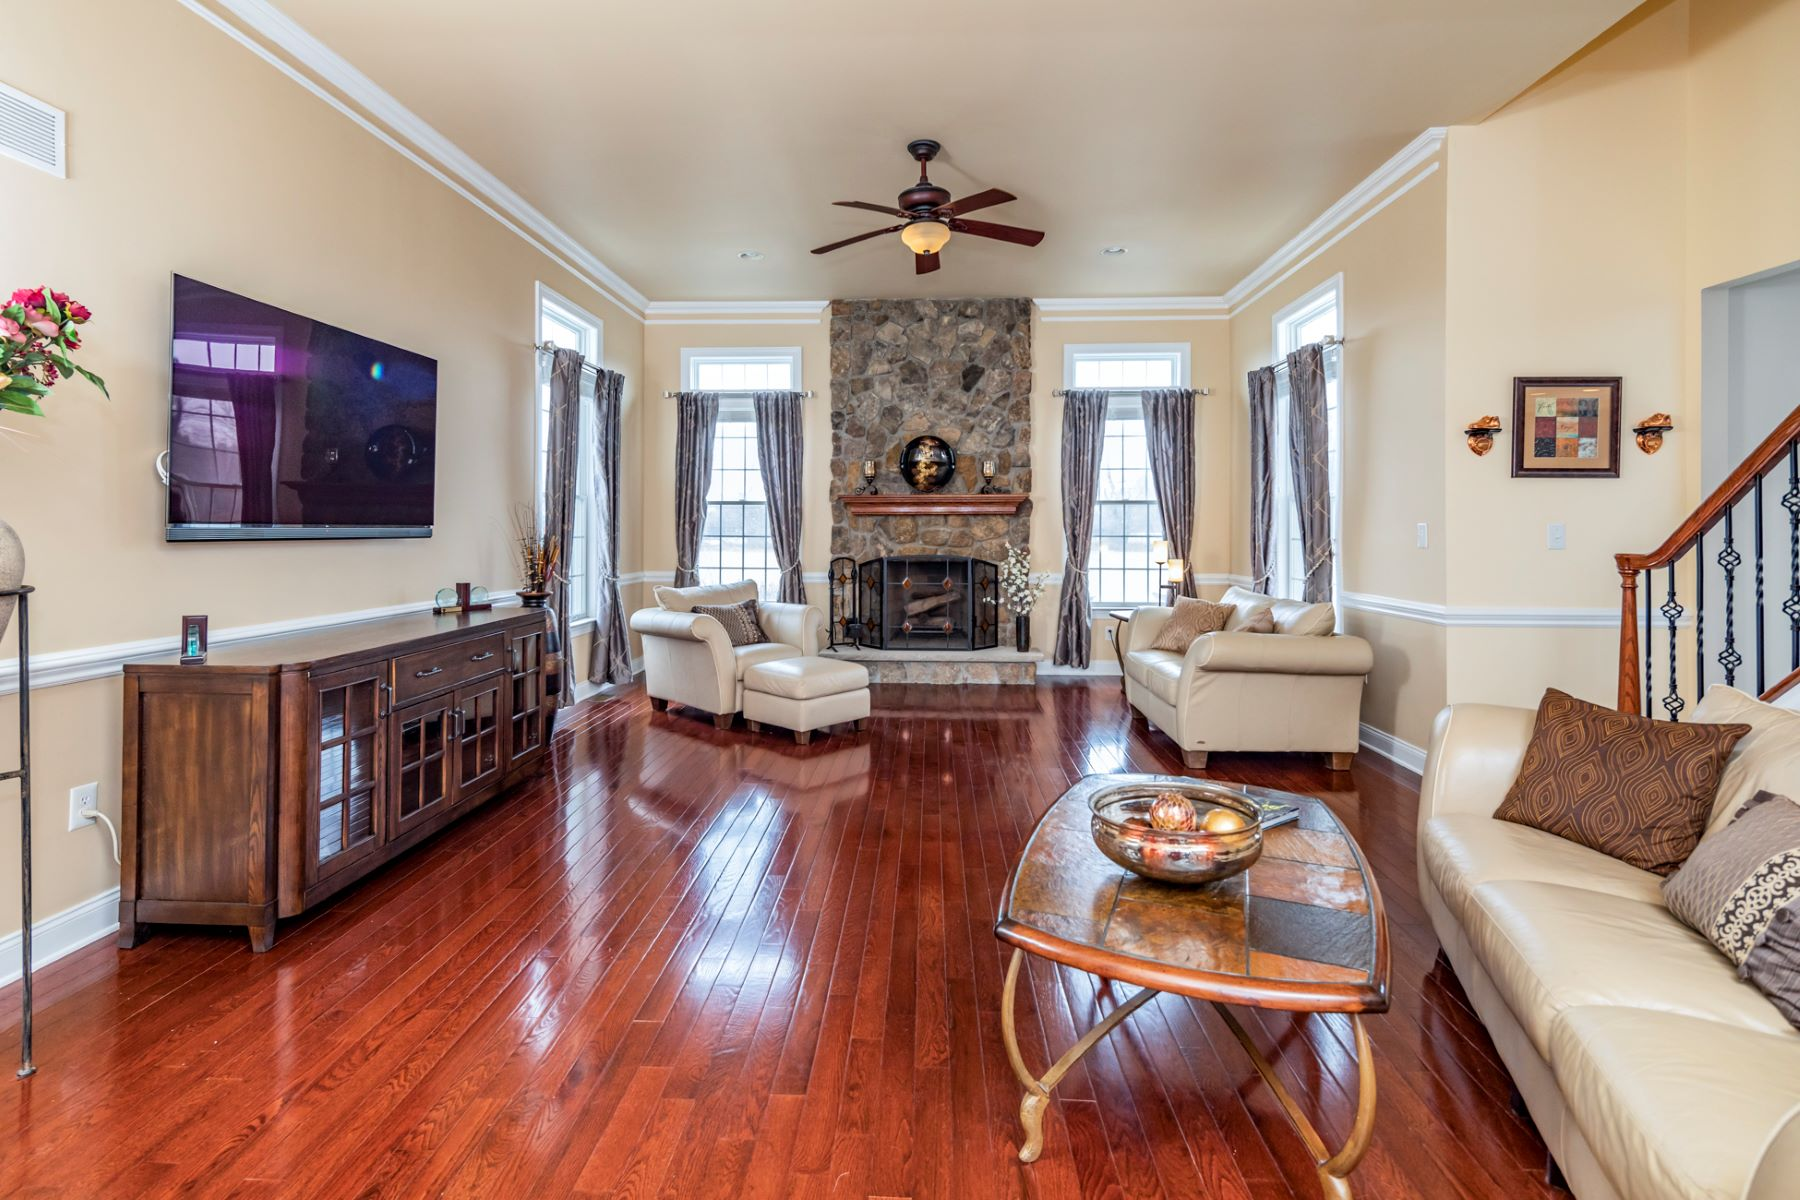 Additional photo for property listing at Luxury, Craftsmanship, Warmth in Perfect Measure 11 Hendrickson Court, Hillsborough, New Jersey 08844 United States